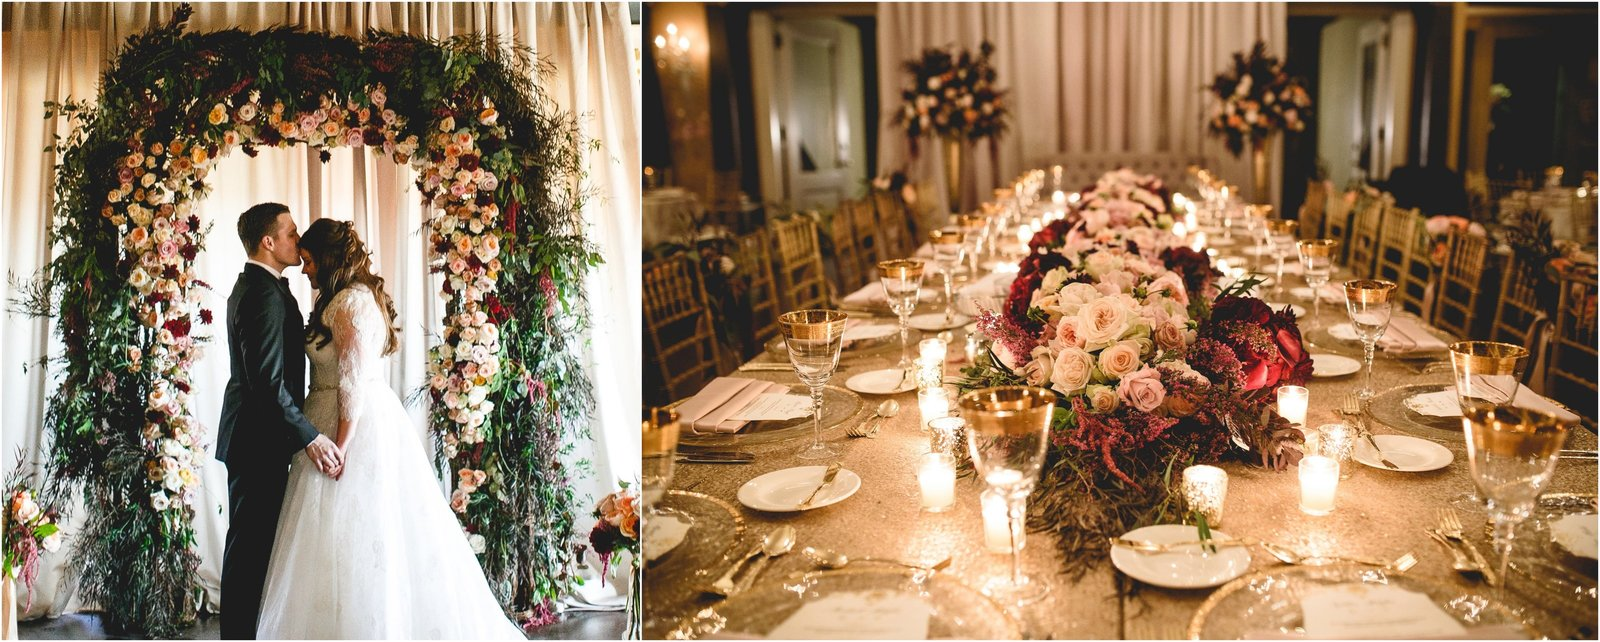 Fall Wedding at Semple Mansion with burgandy, gold and blush.